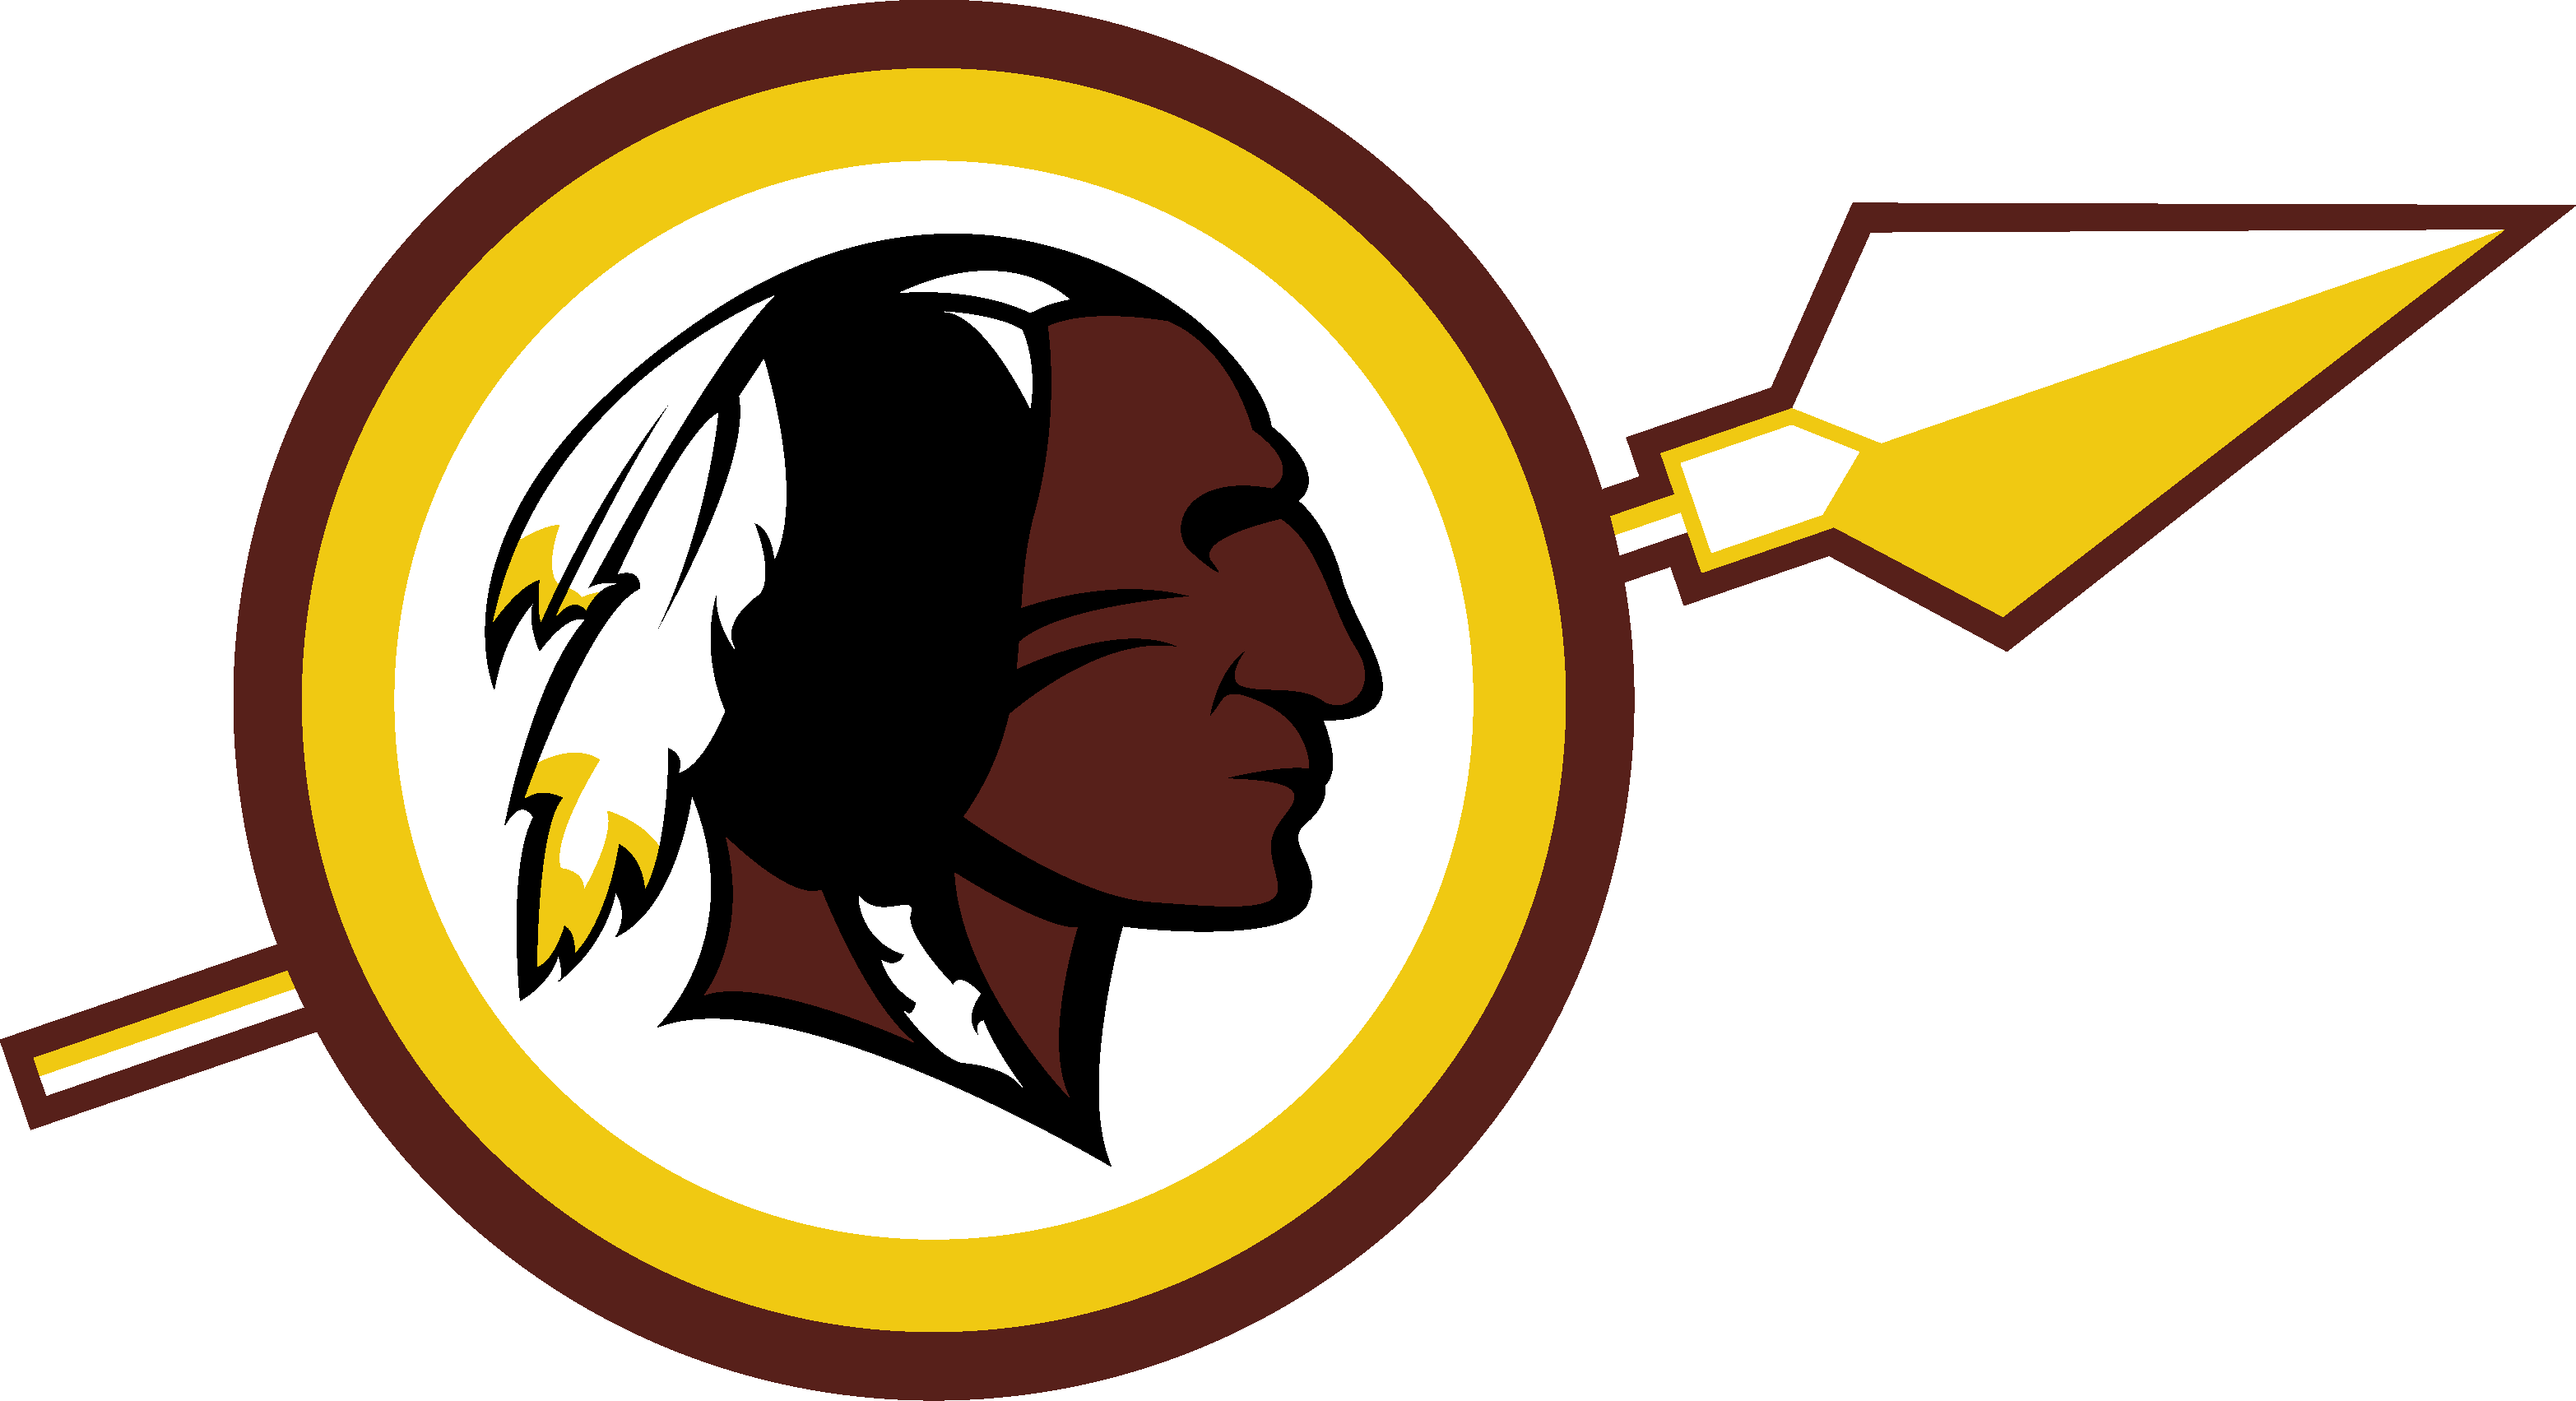 New Washington Redskins logo.